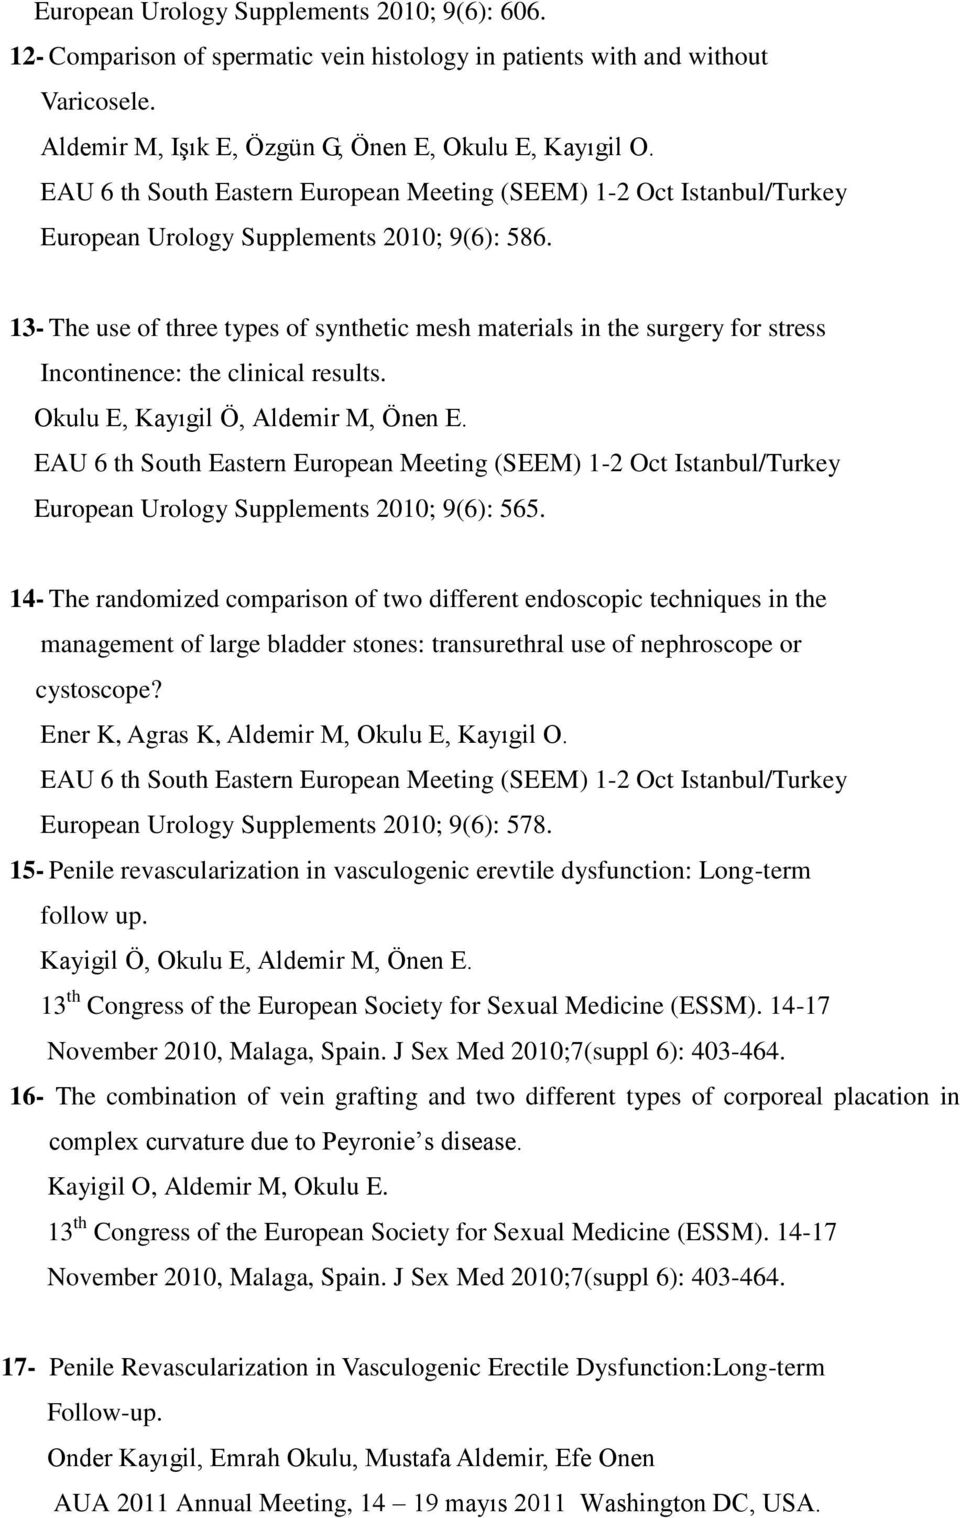 13- The use of three types of synthetic mesh materials in the surgery for stress Incontinence: the clinical results. Okulu E, Kayıgil Ö, Aldemir M, Önen E.